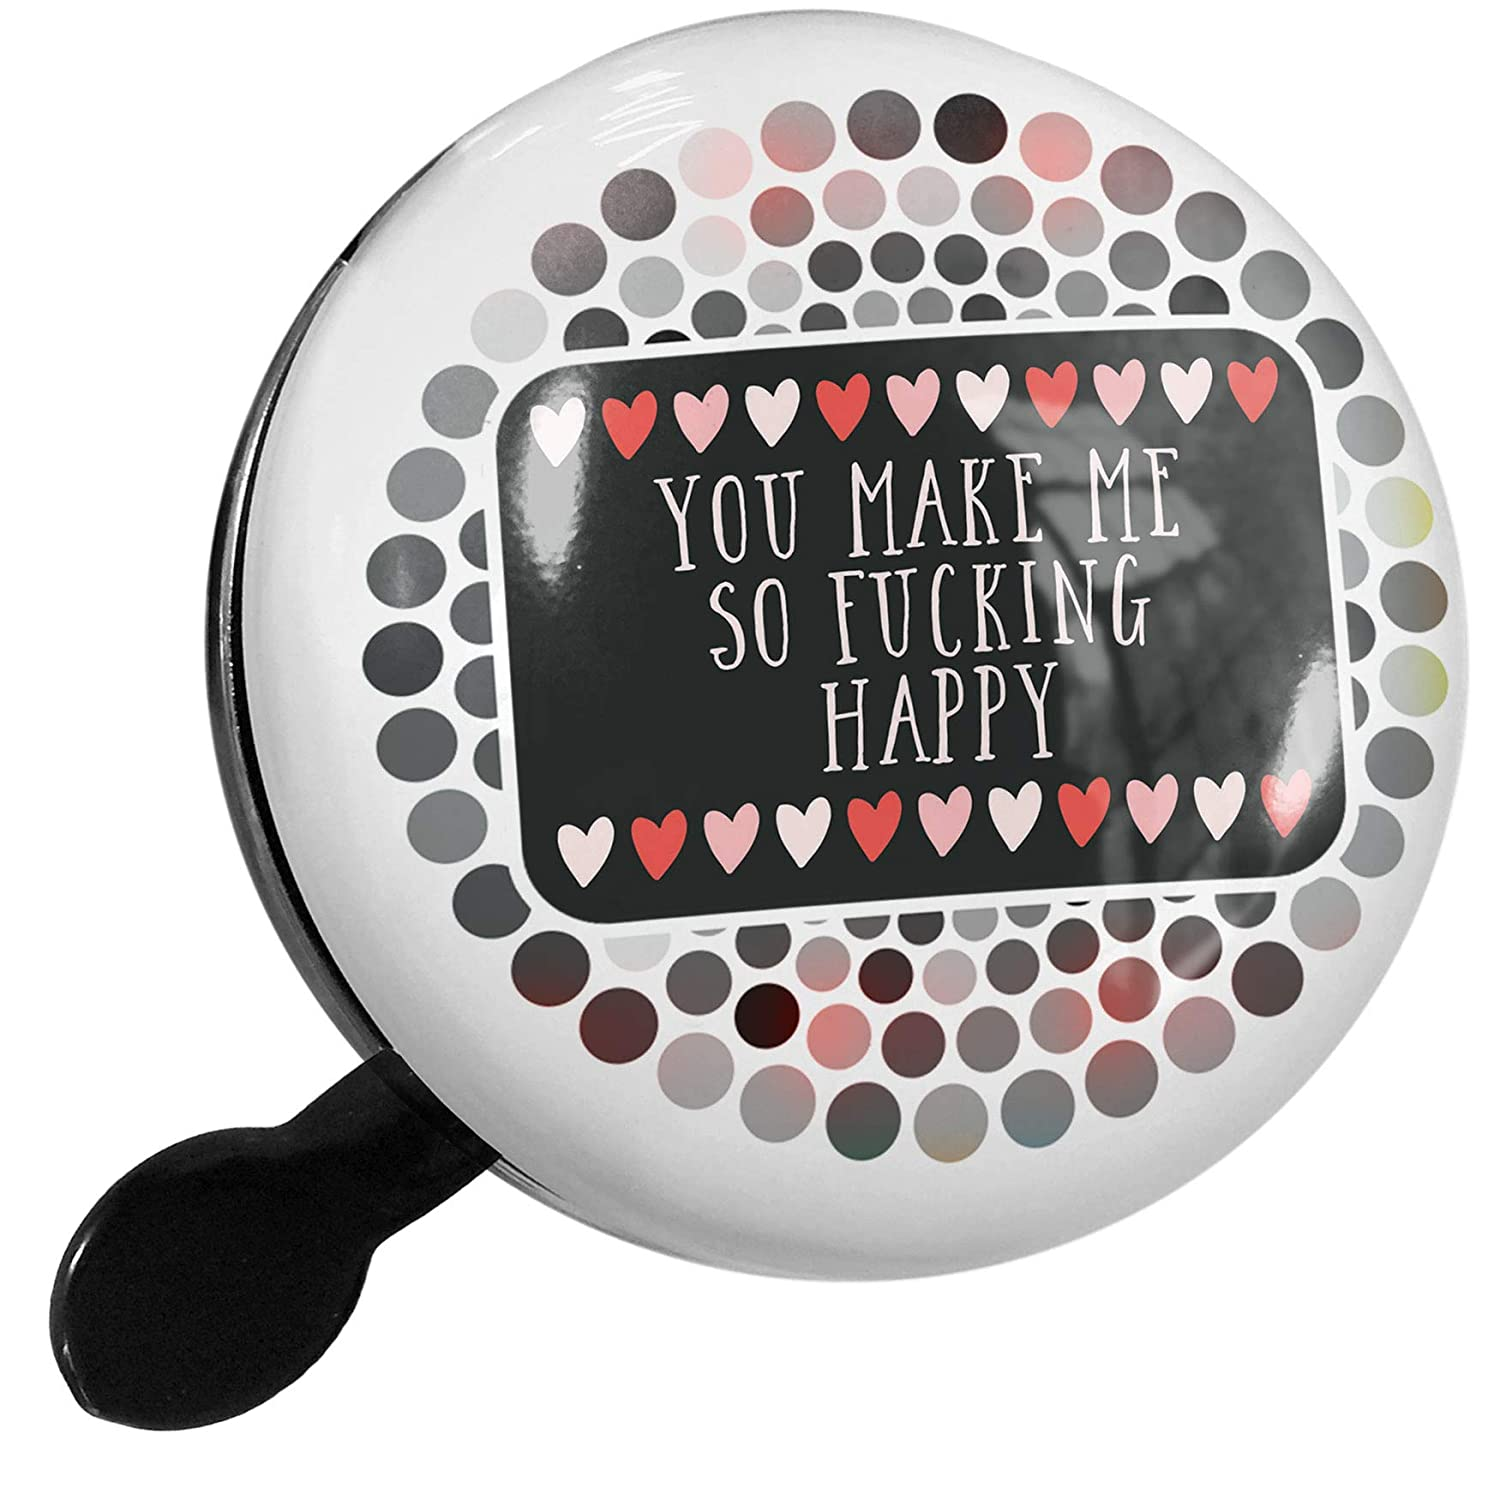 Amazon.com : NEONBLOND Bike Bell You Make Me So Fucking Happy Valentine's  Day Cute Hearts Scooter or Bicycle Horn : Sports & Outdoors